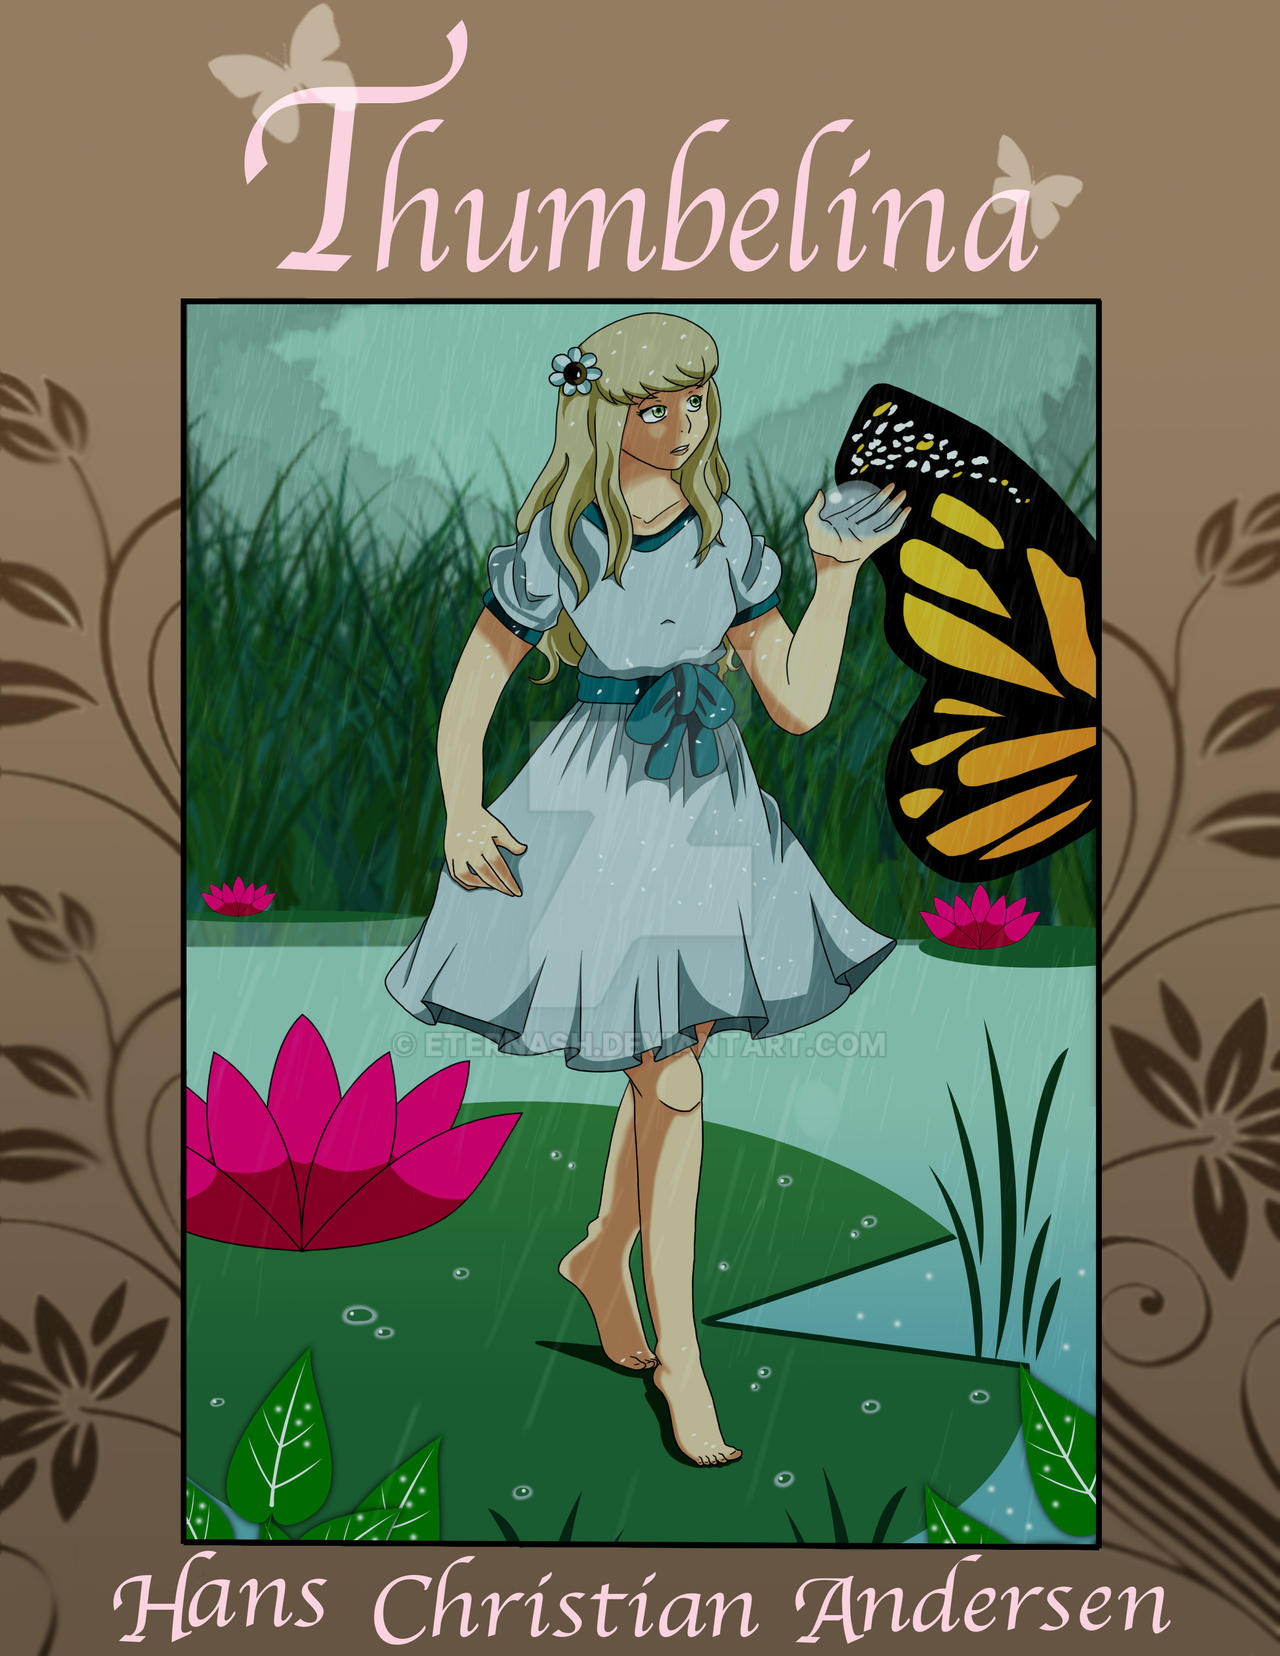 graphic design children u0027s book cover thumbelina by eternash on